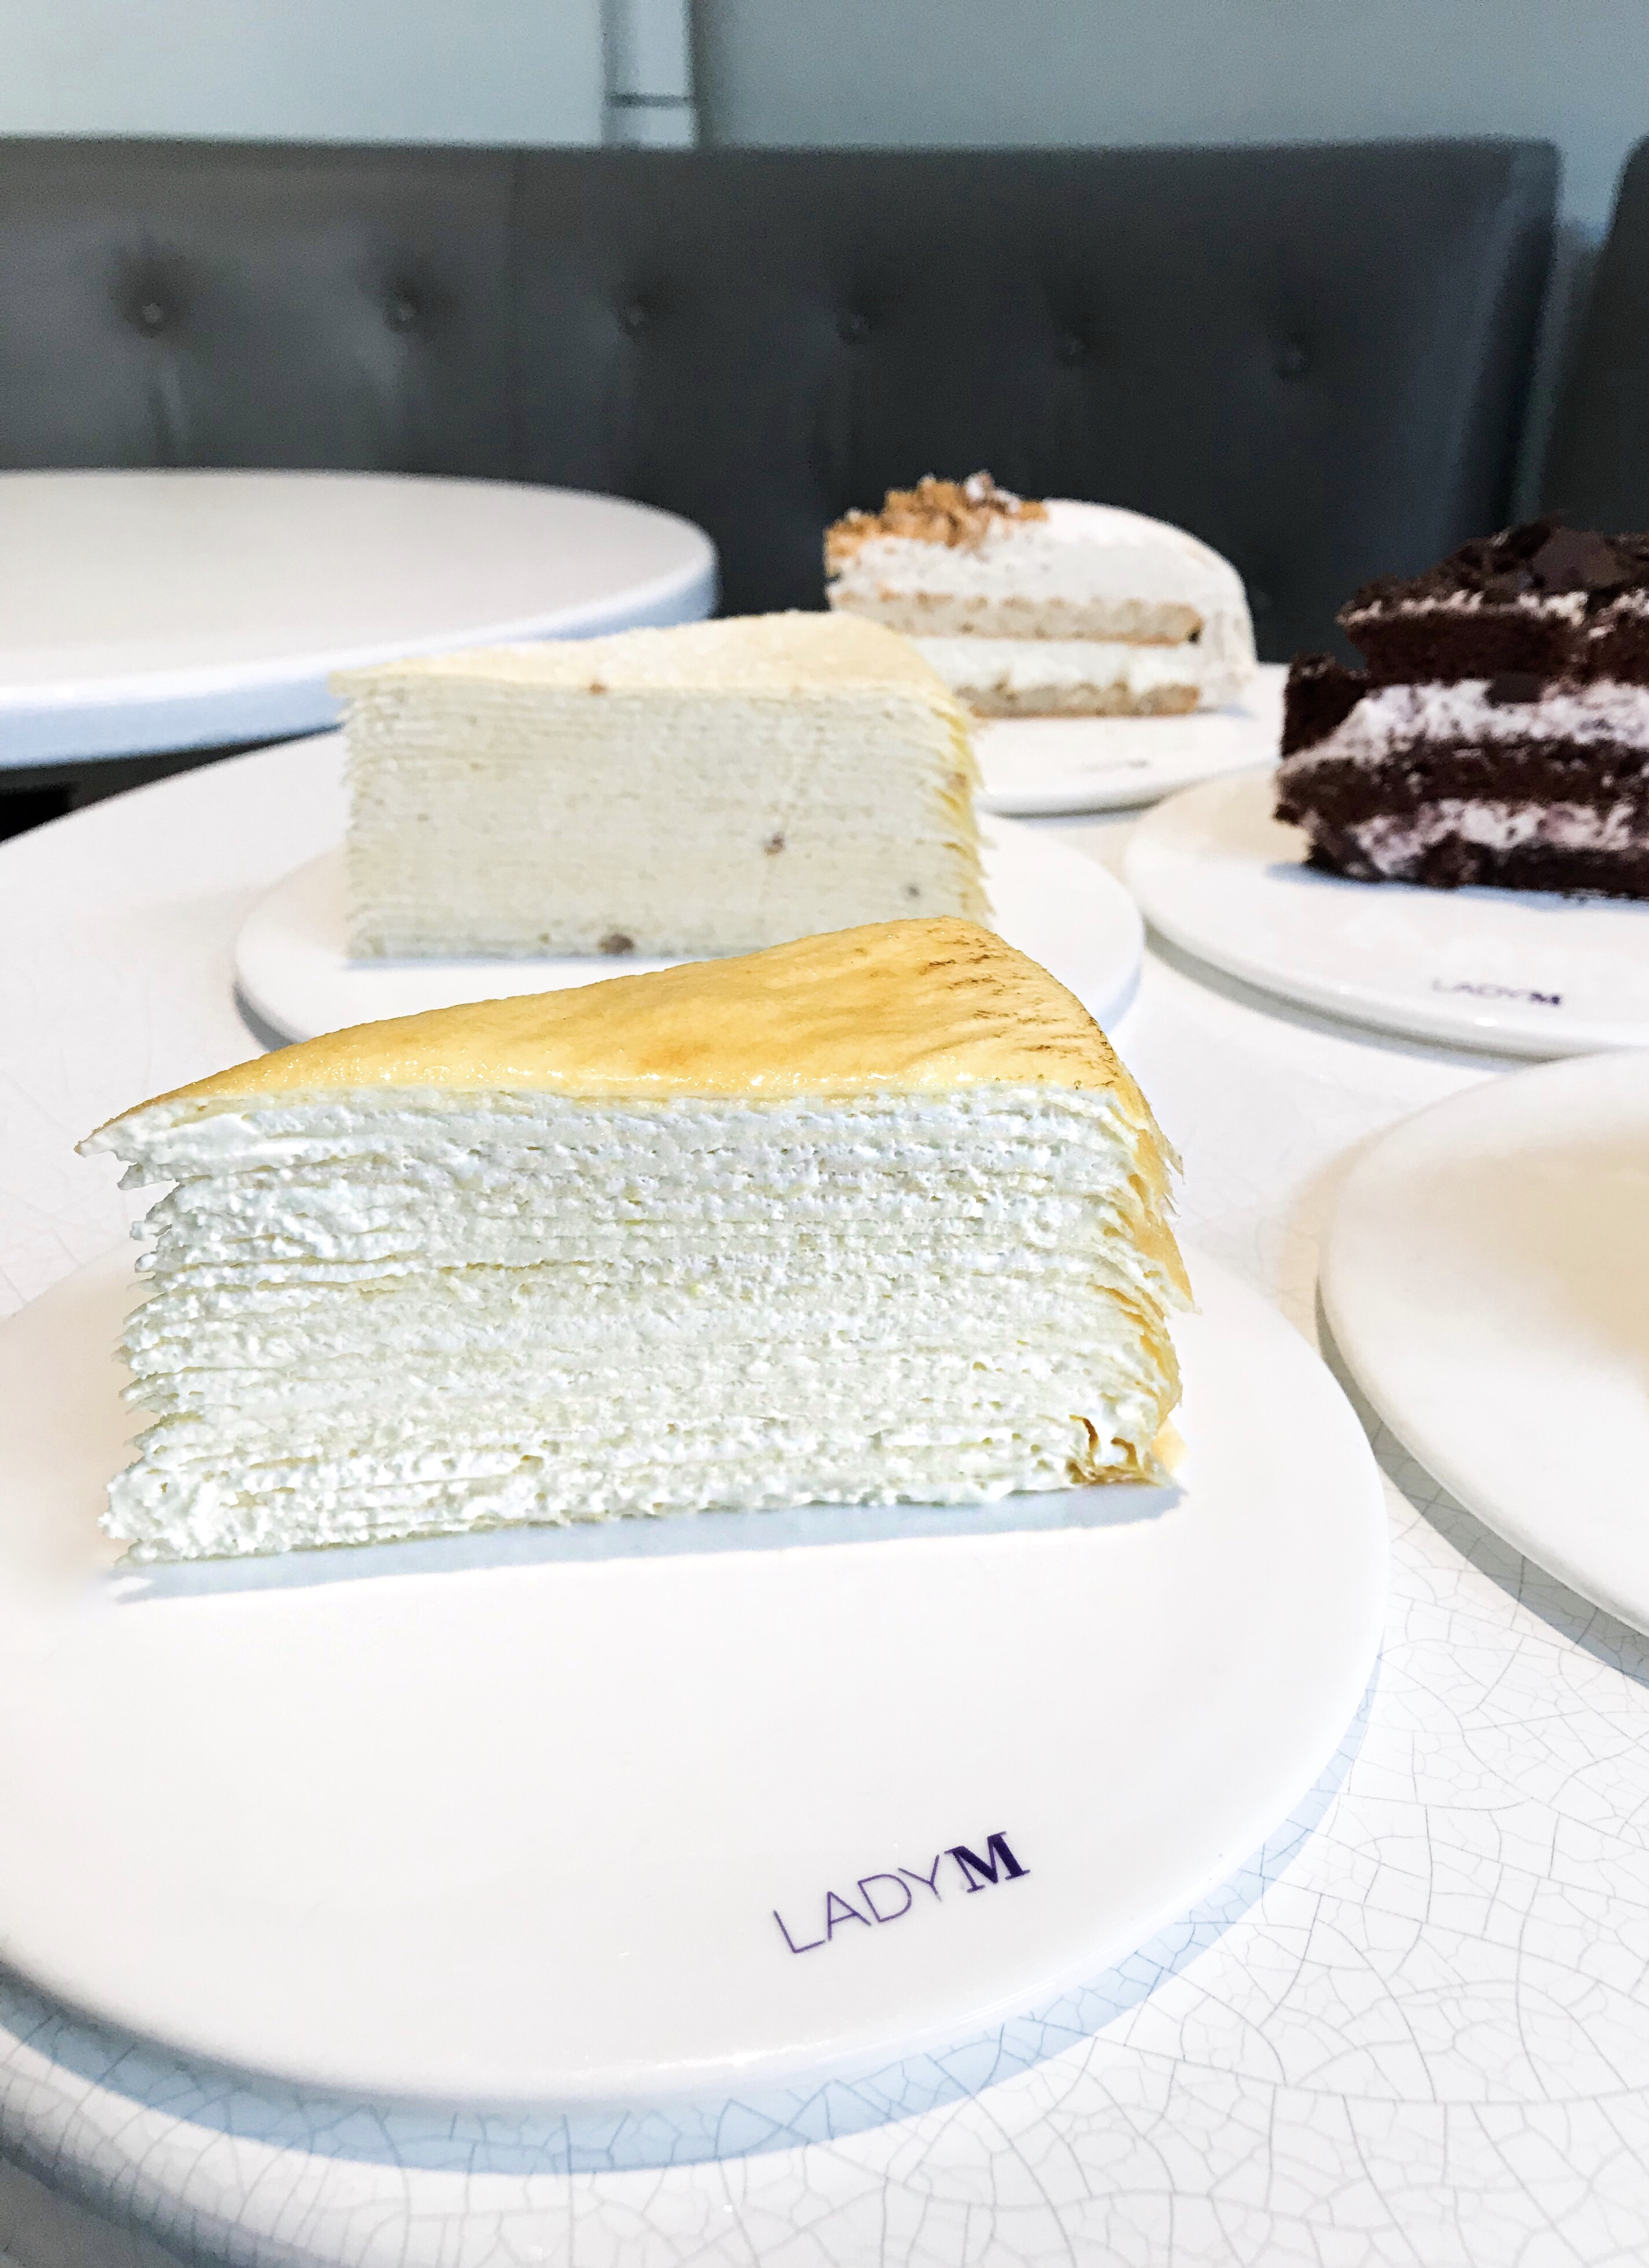 Crepe Cake, Lady M Cake Boutique